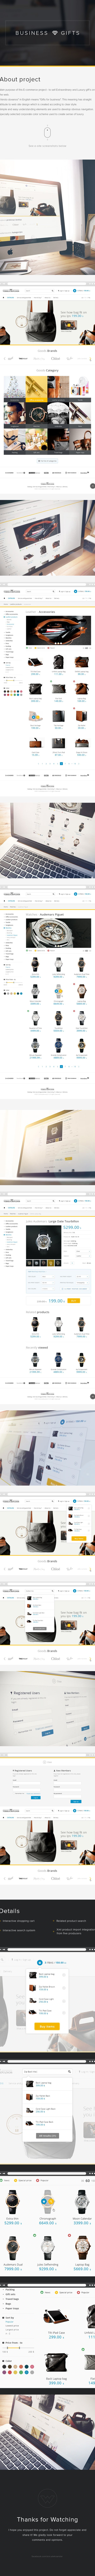 """E-Site """"Business Gifts"""" Web Design on Behance"""